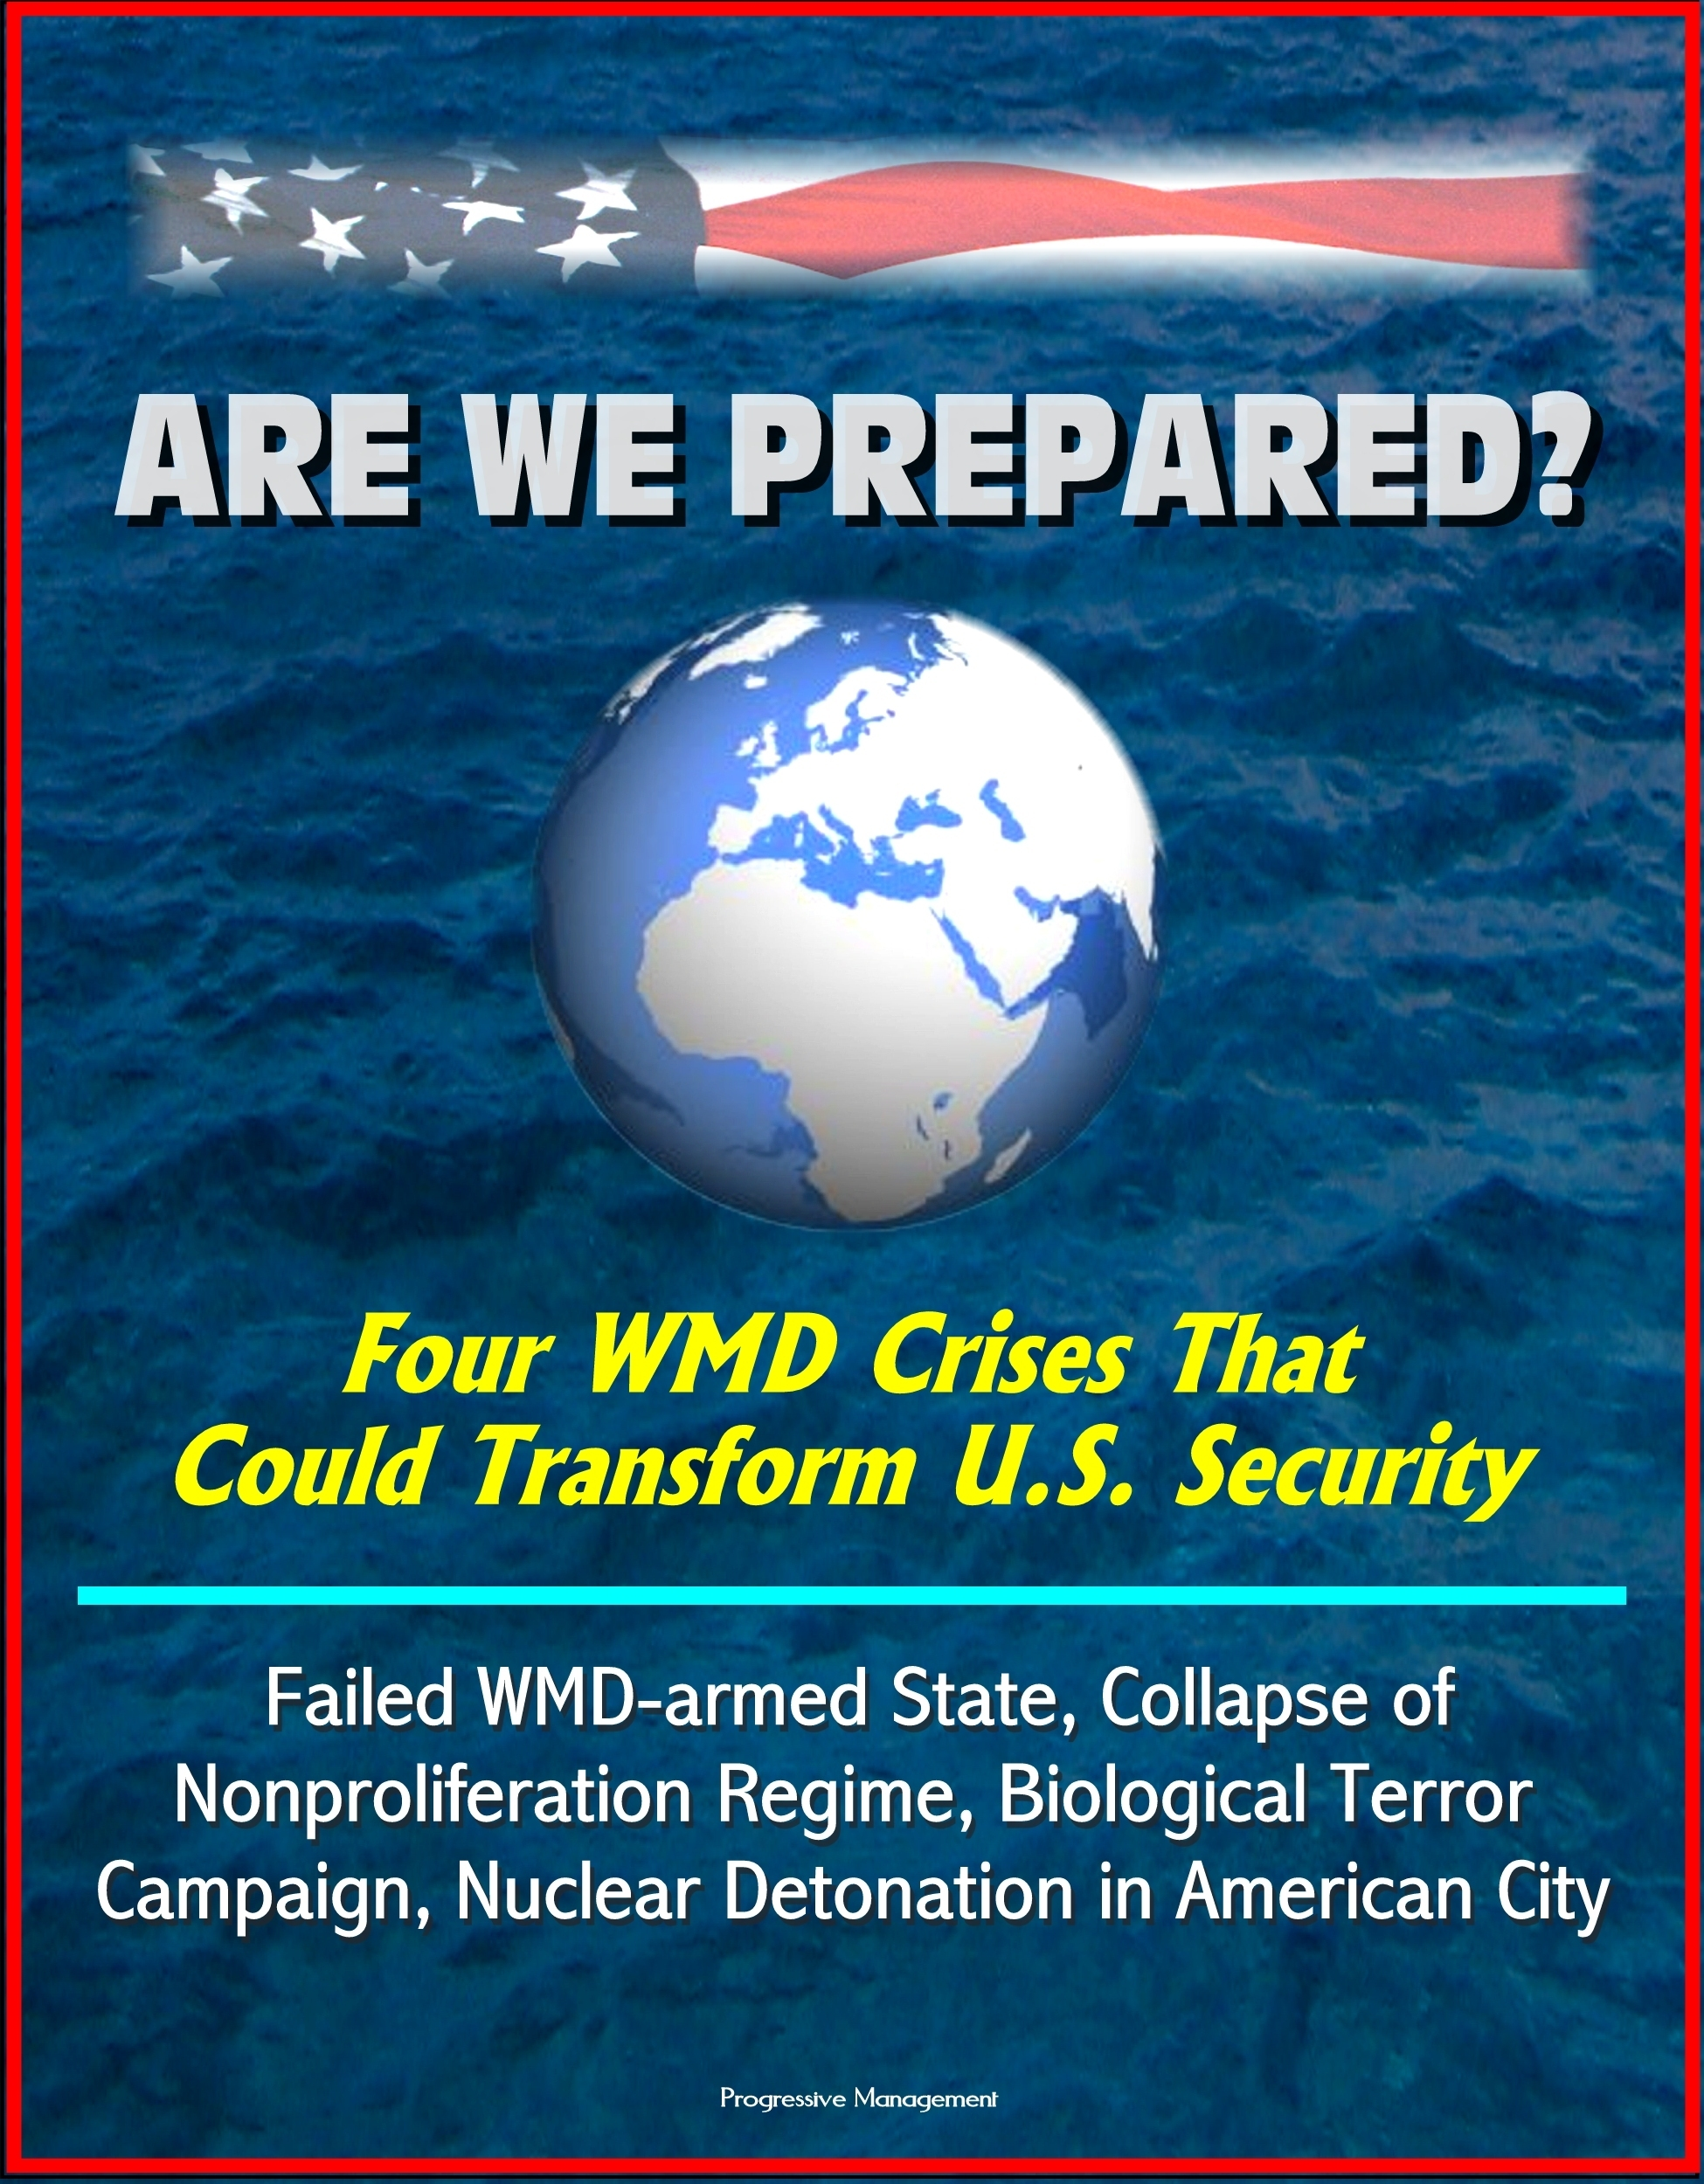 Are We Prepared? Four WMD Crises That Could Transform U.S. Security: Failed WMD-armed State, Collapse of Nonproliferation Regime, Biological Terror Campaign, Nuclear Detonation in American City  by  Progressive Management